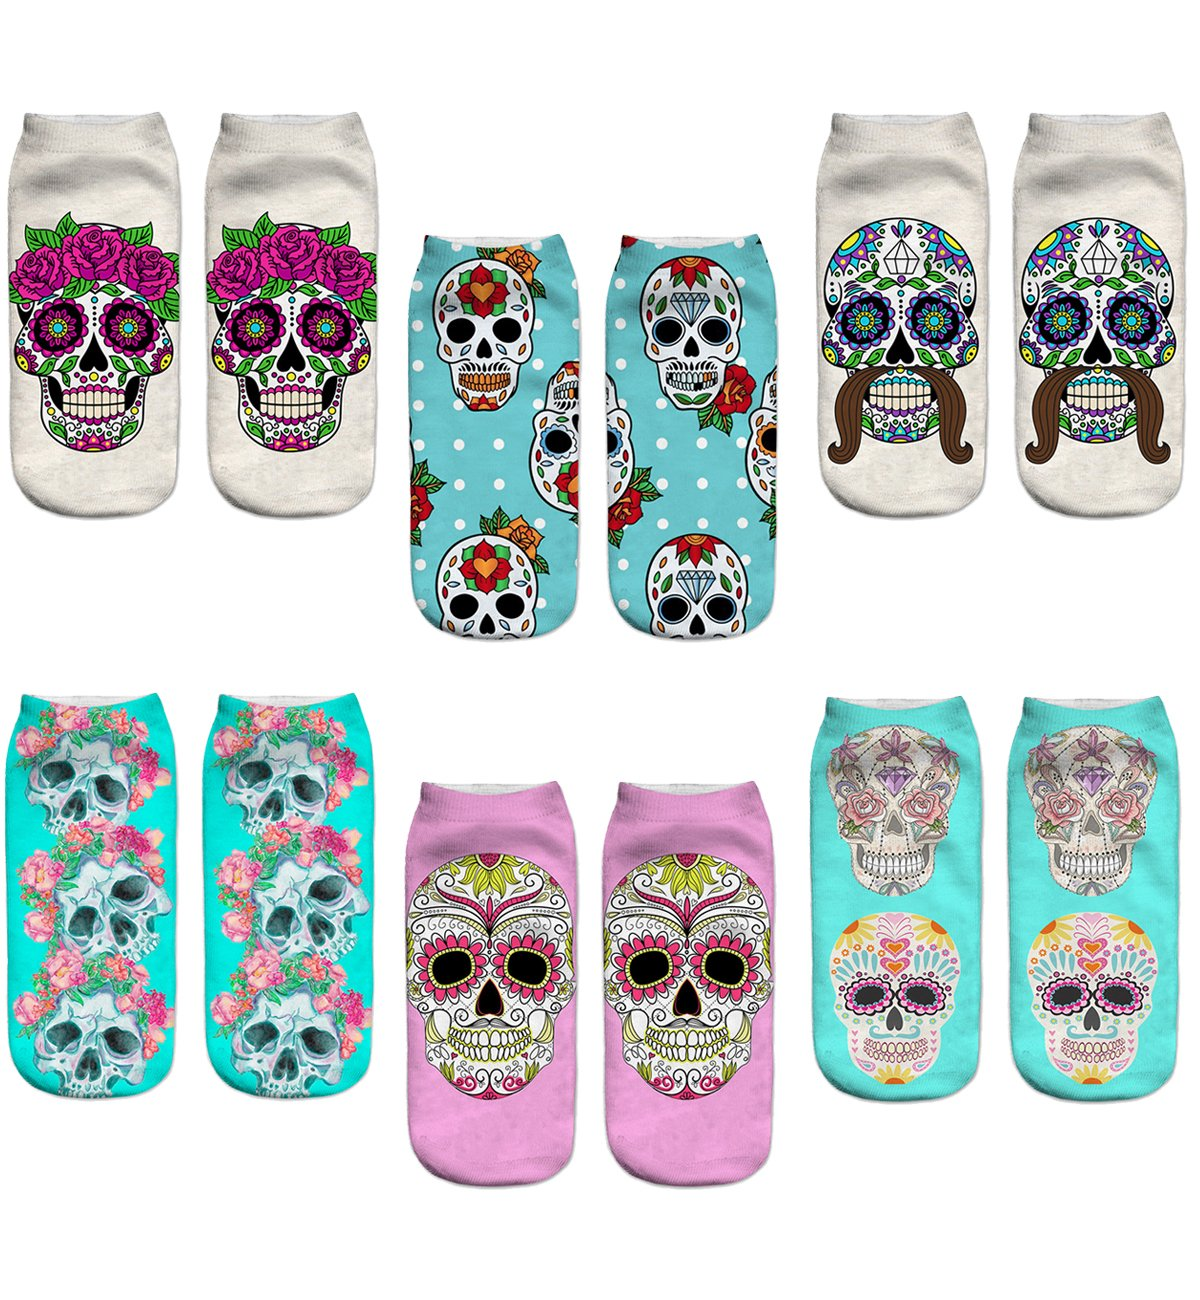 Women's 3D Cartoon Print Funny Smiley Casual Crazy Novelty Ankle Socks Value Pack (skull 1) by Footalk (Image #1)